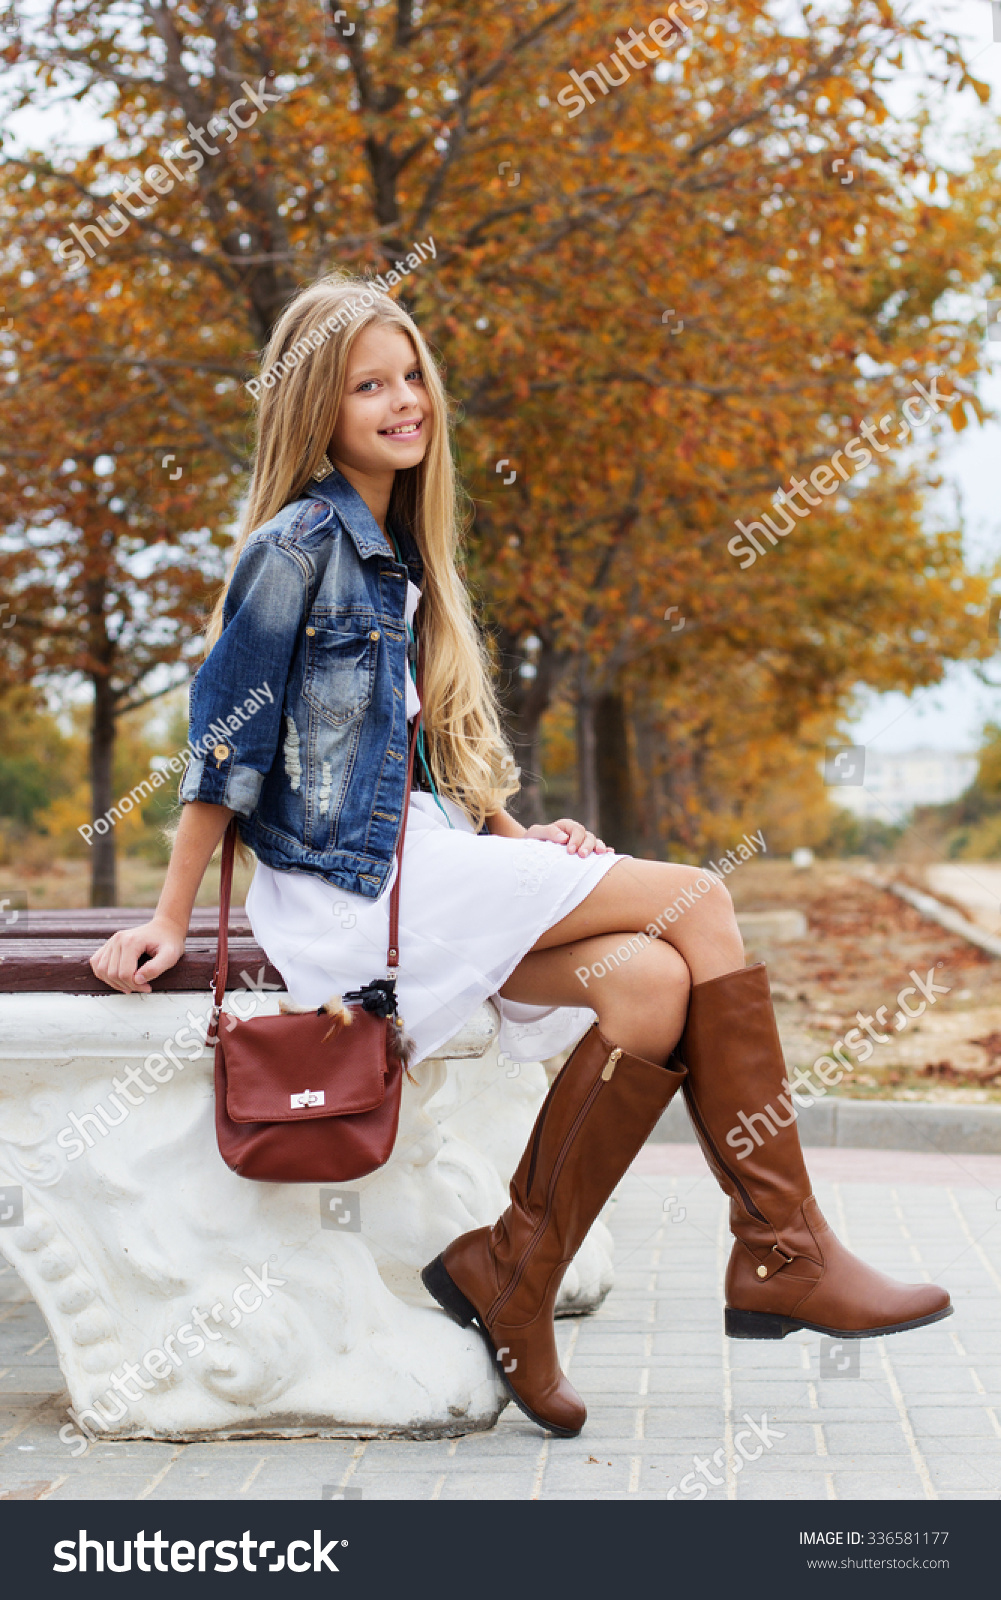 Baby Girl Wearing Cowboy Boots